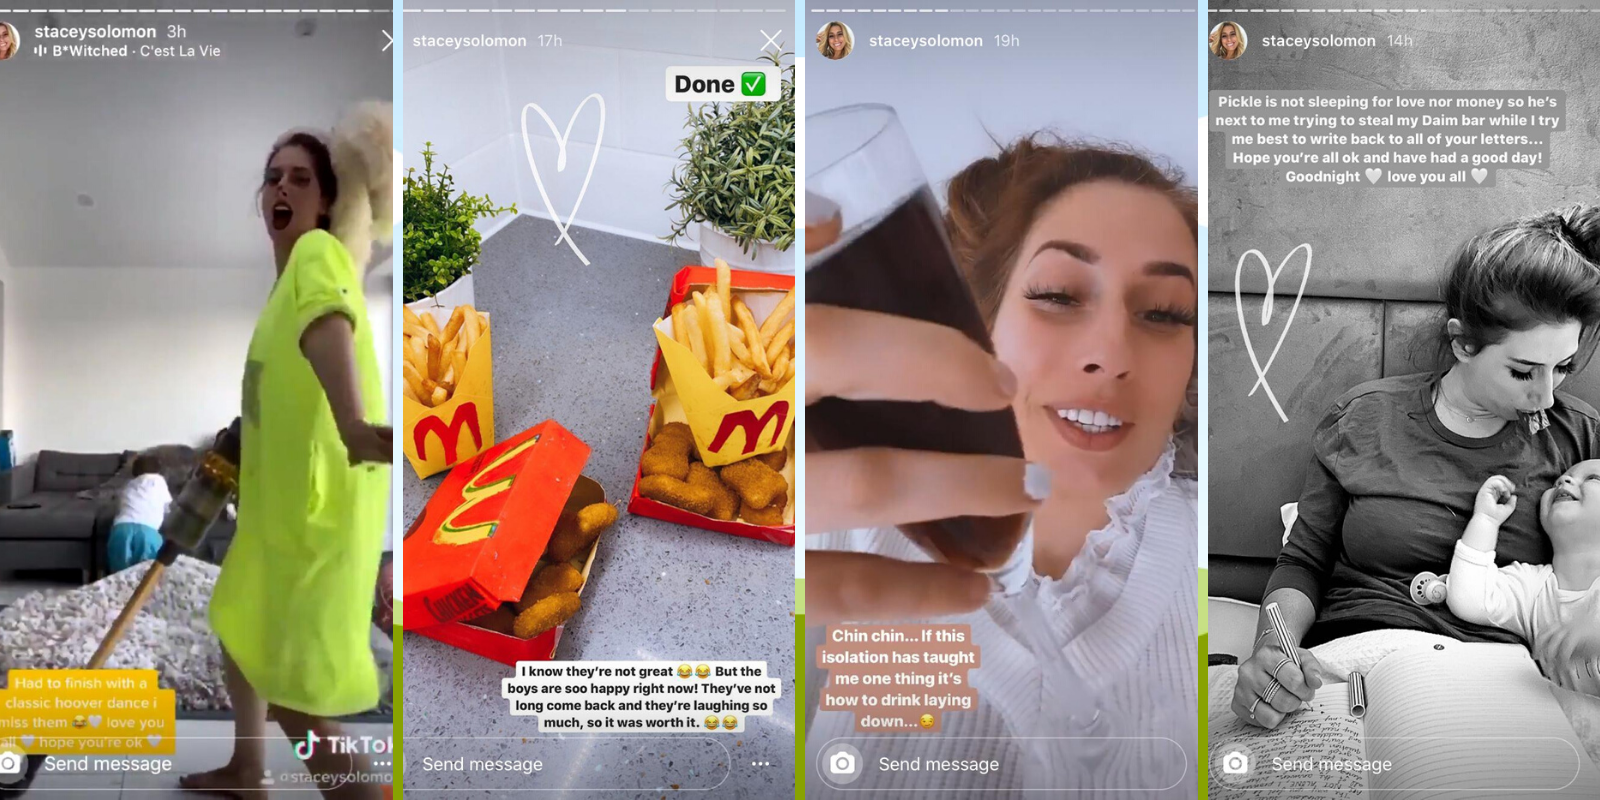 Why we should all be watching Stacey Solomon's Instagram Stories during self-isolation